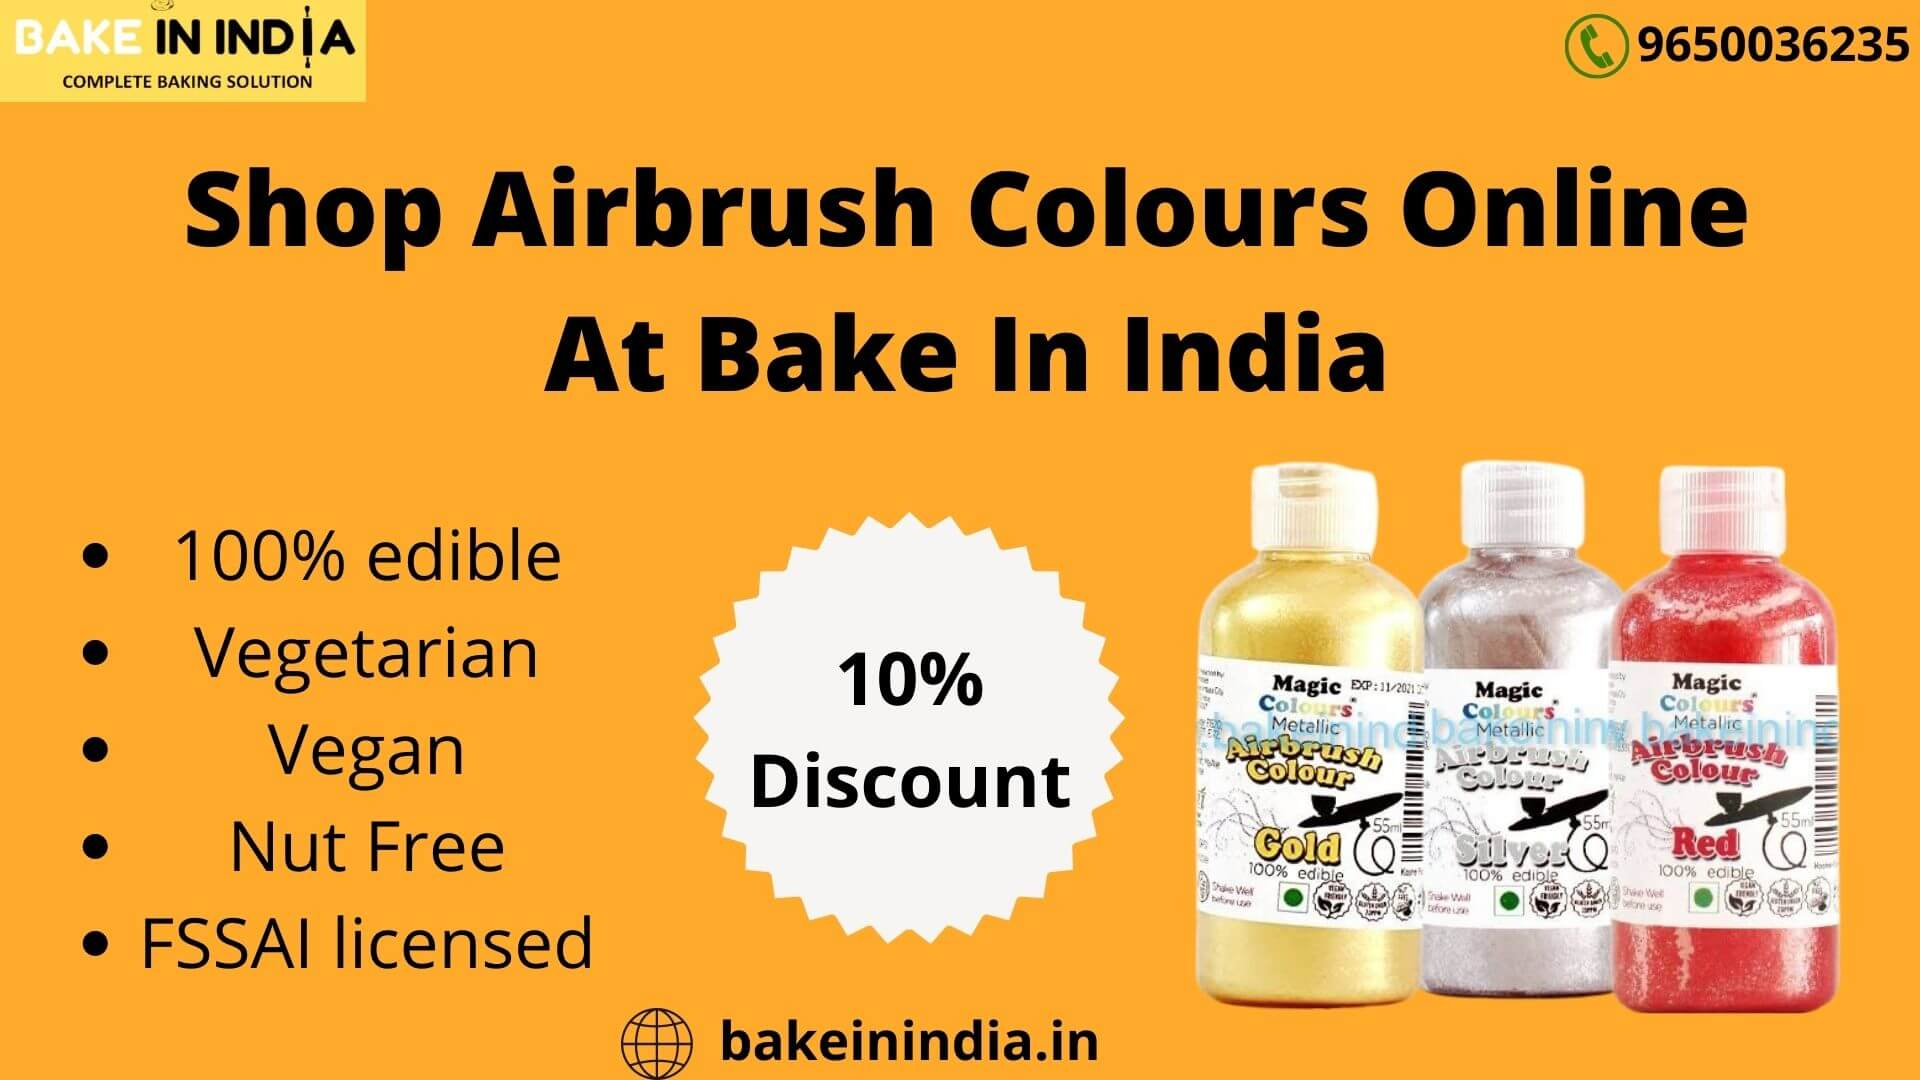 Shop Airbrush Colours online at Bake In India